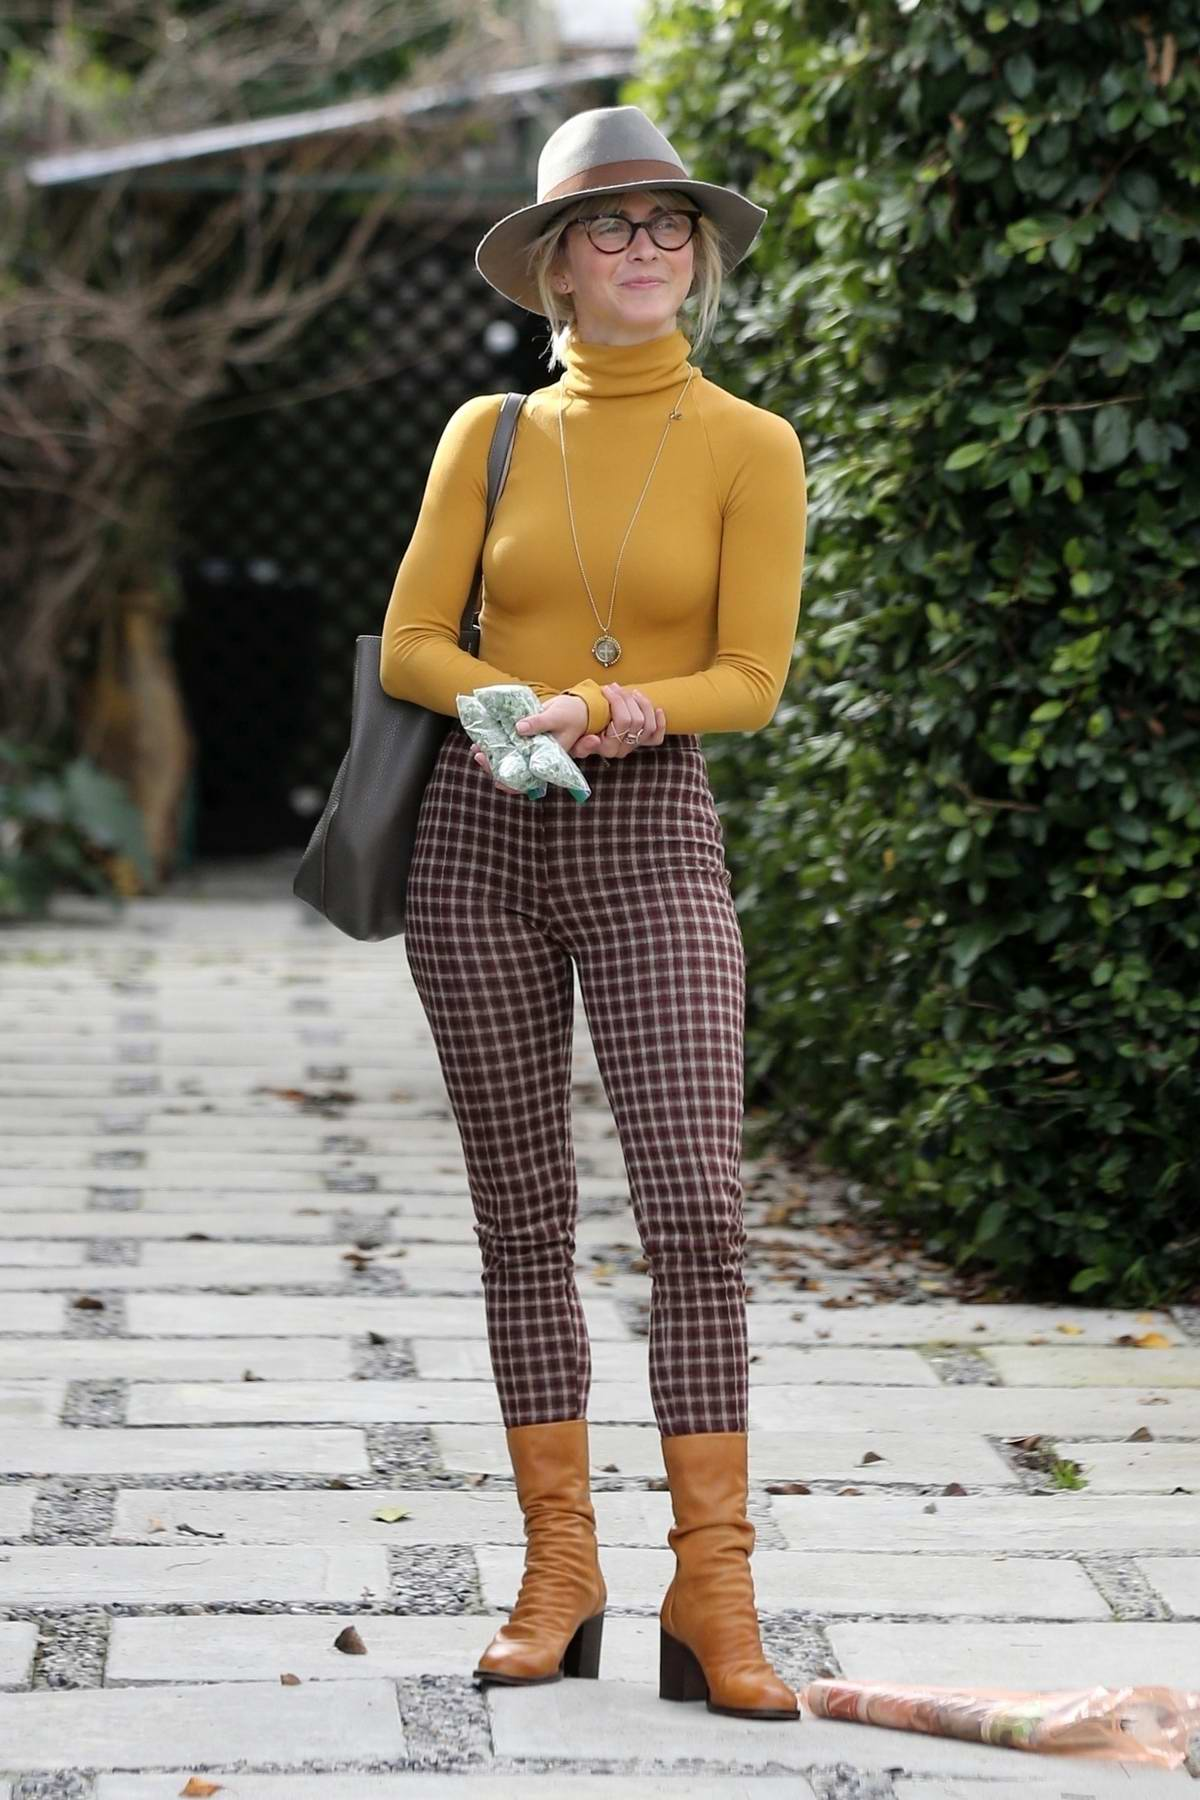 Julianne Hough looks stylish in a mustard yellow turtleneck, checkered pants with brown boots and grey fedora while out with Derek Hough in Los Angeles